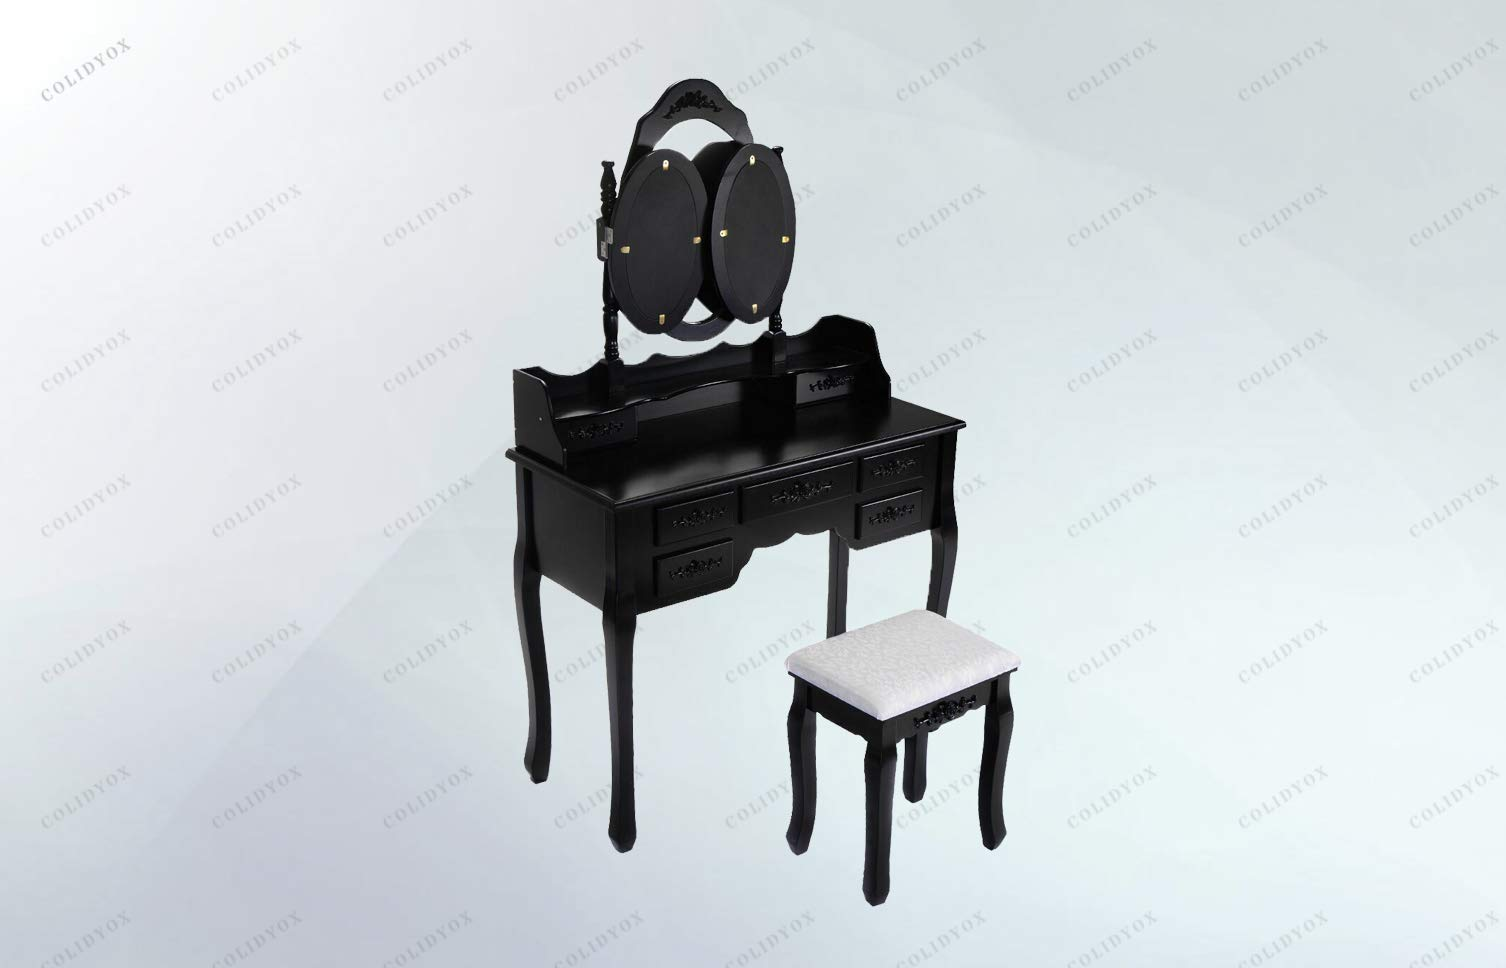 COLIDYOX>>>Black Tri Folding Oval Mirror Wood Vanity Makeup Table Our Black Vanity Makeup Table and Stool Set, which has a Beautiful and Traditional Style, is a Perfect Choice for Any Bedroom.